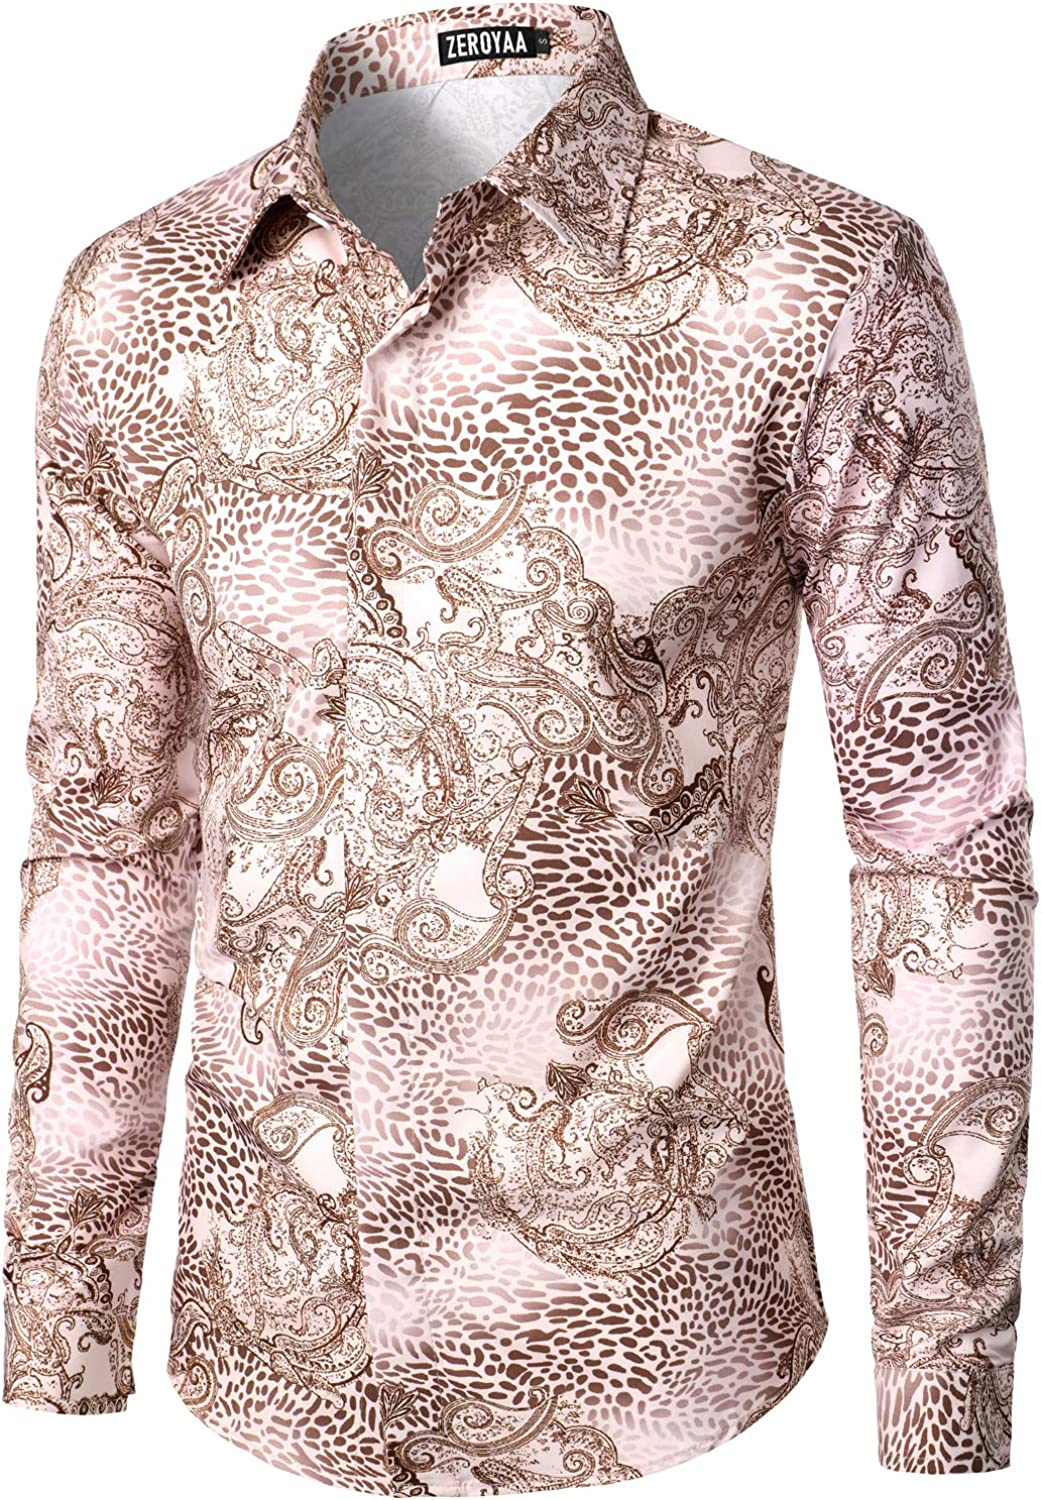 ZEROYAA Men's Hipster Printed Polyester Slim Fit Long Sleeve Button Down Floral Dress Shirts